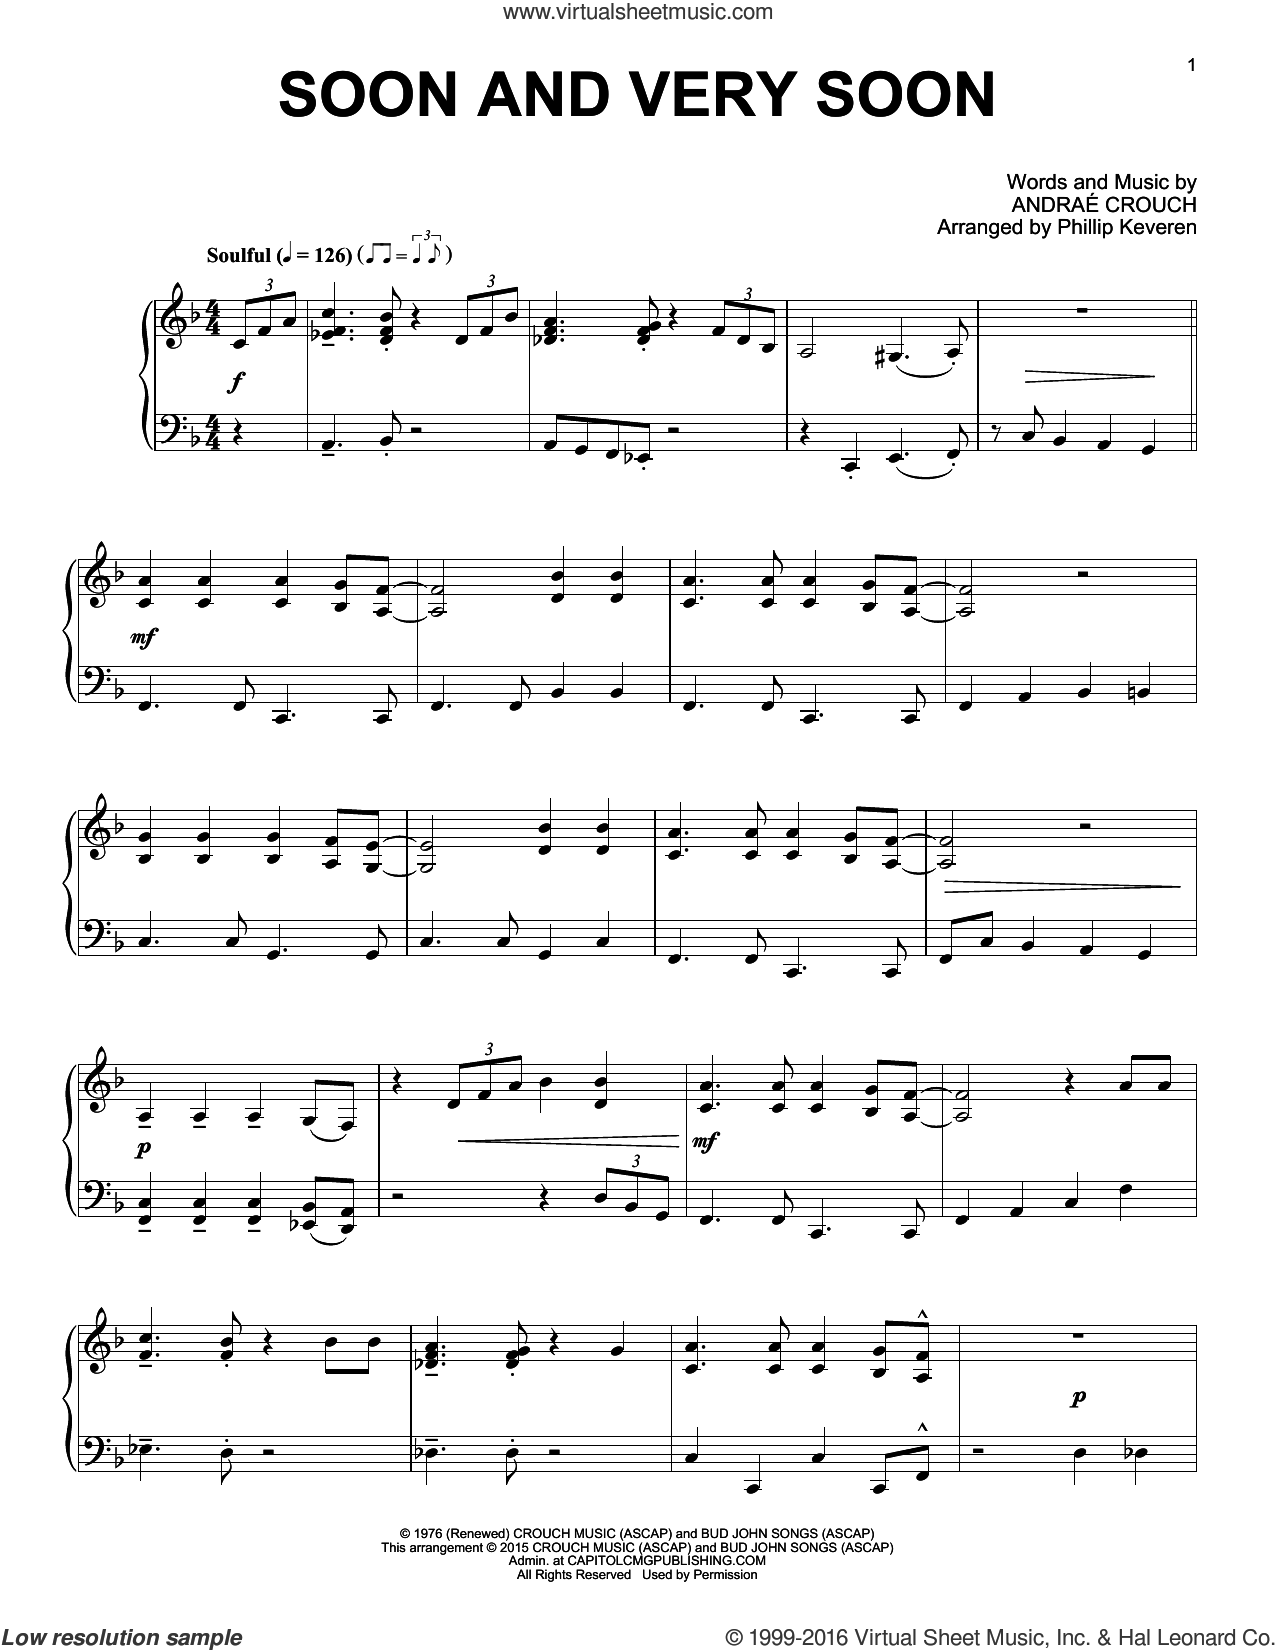 Soon And Very Soon sheet music for piano solo by Andrae Crouch and Phillip Keveren, intermediate skill level